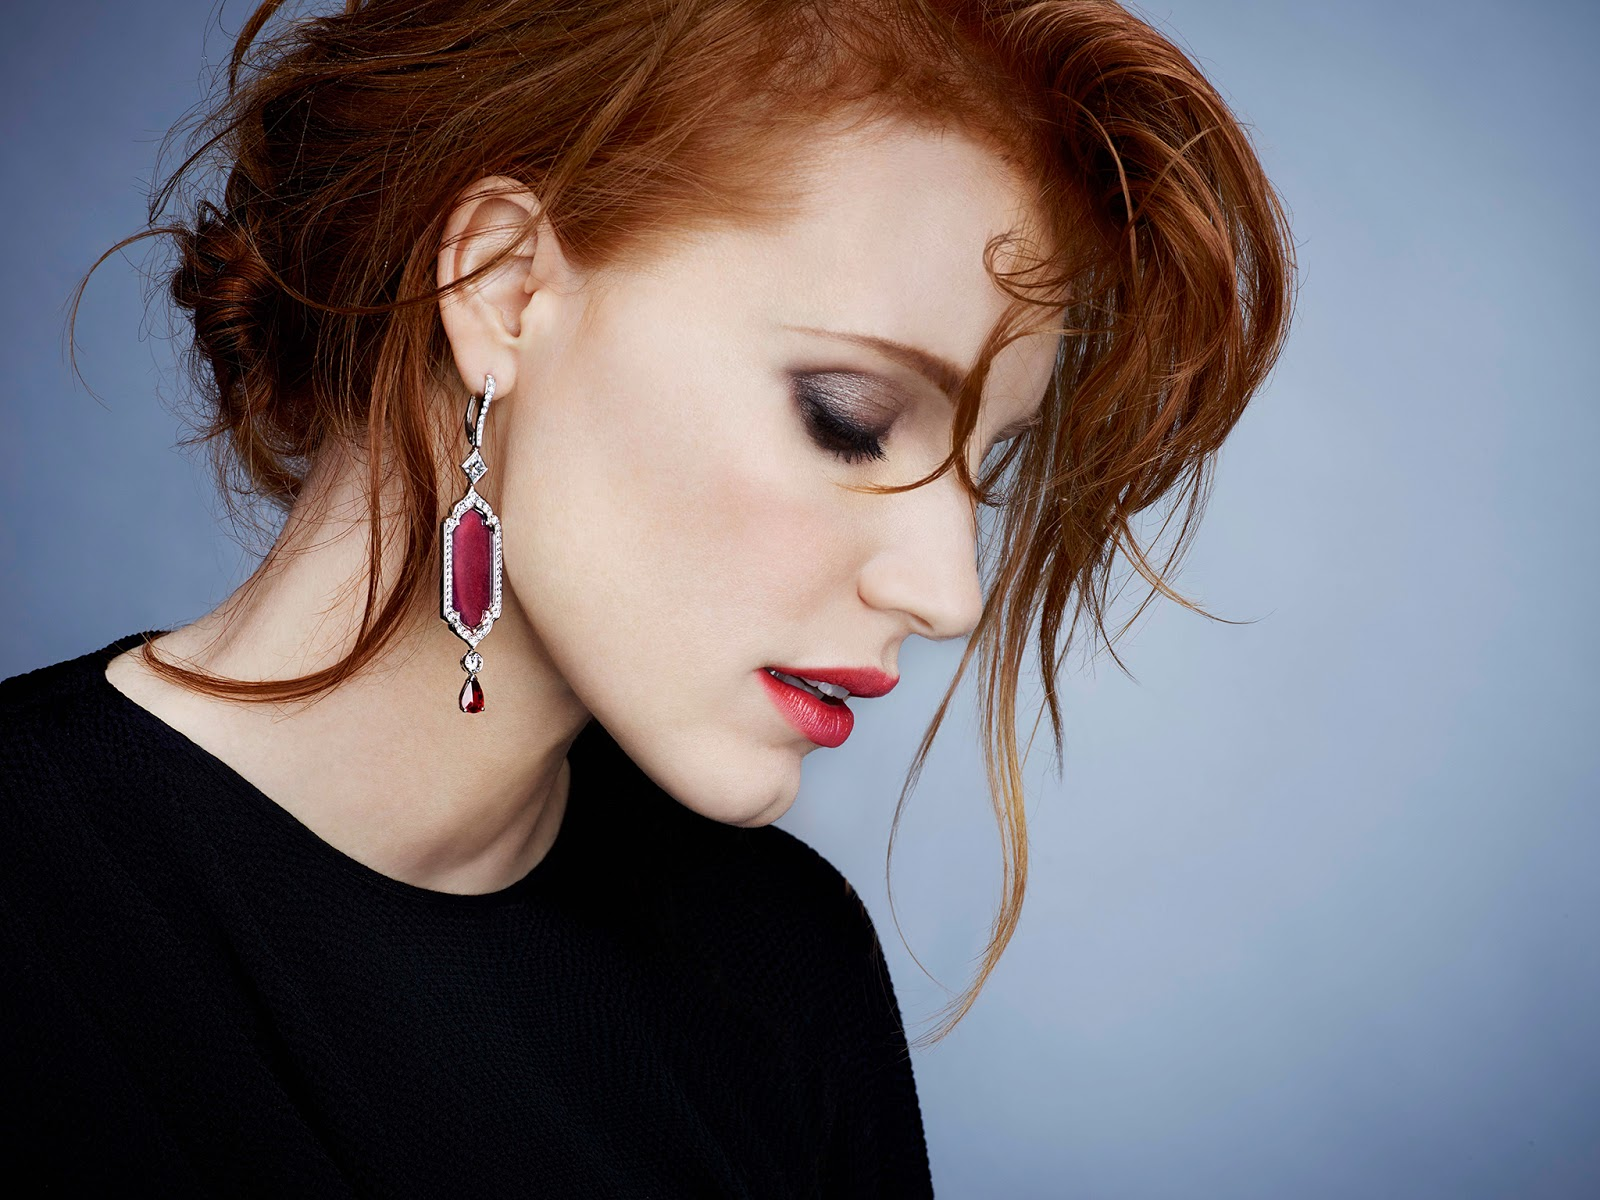 Jessica_Chastain-Piaget_Jewerly-2015-Ad-Campaign-005